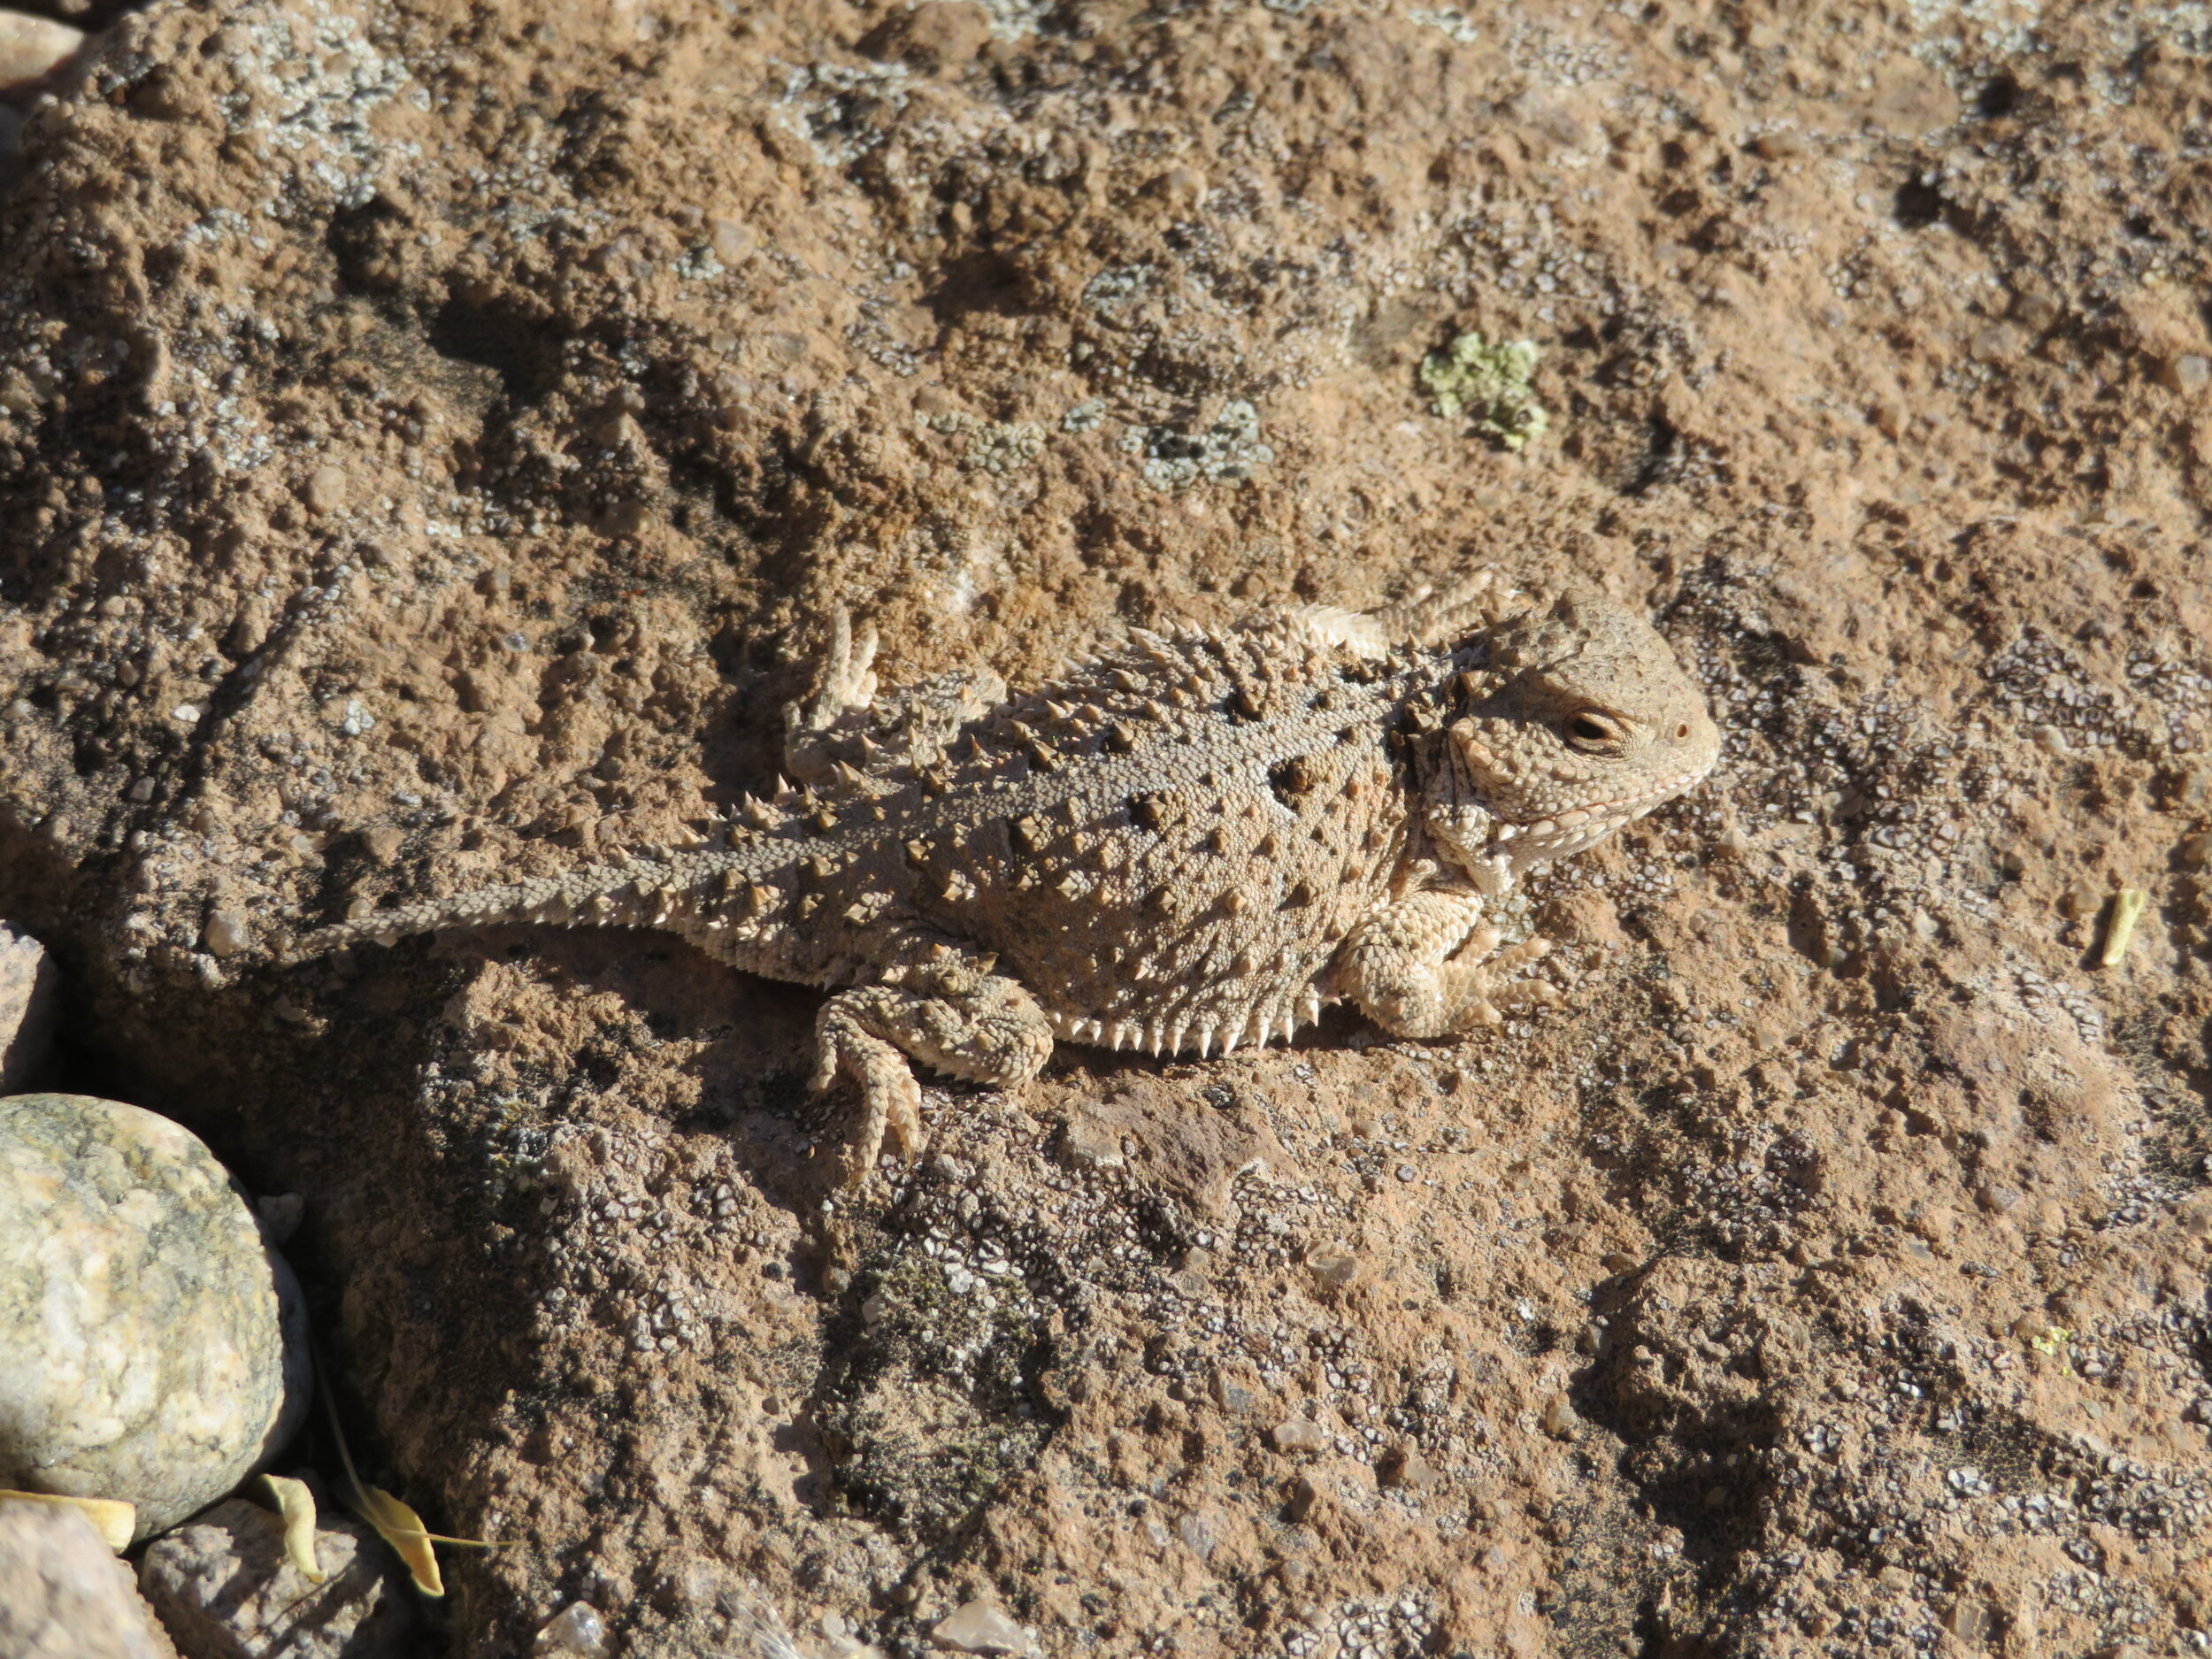 The only critter we met along the trail was a short-horned lizard sunning himself on a cliffside rock.